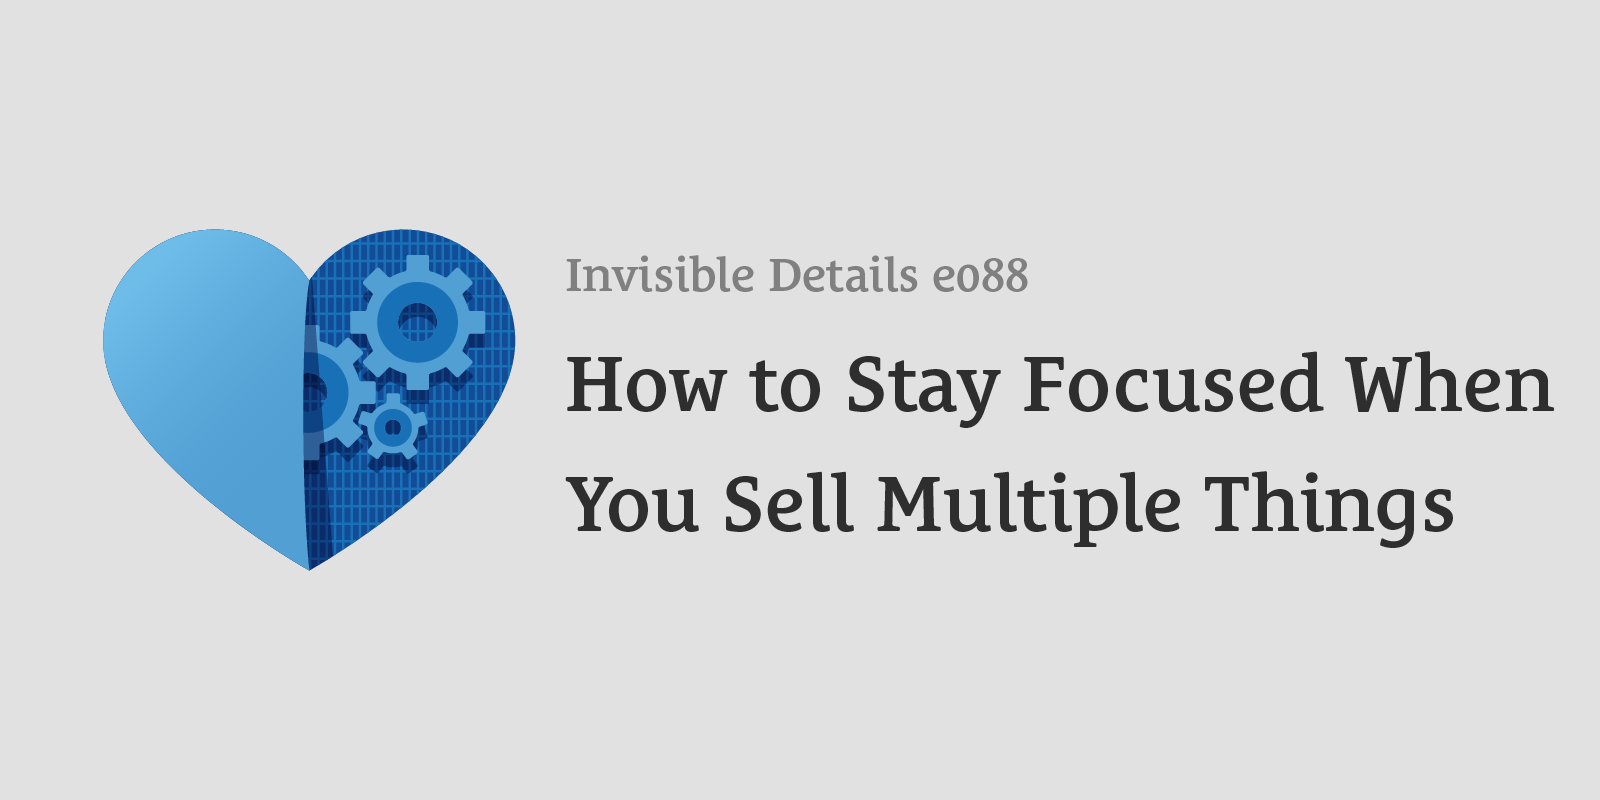 How to Stay Focused When You Sell Multiple Things